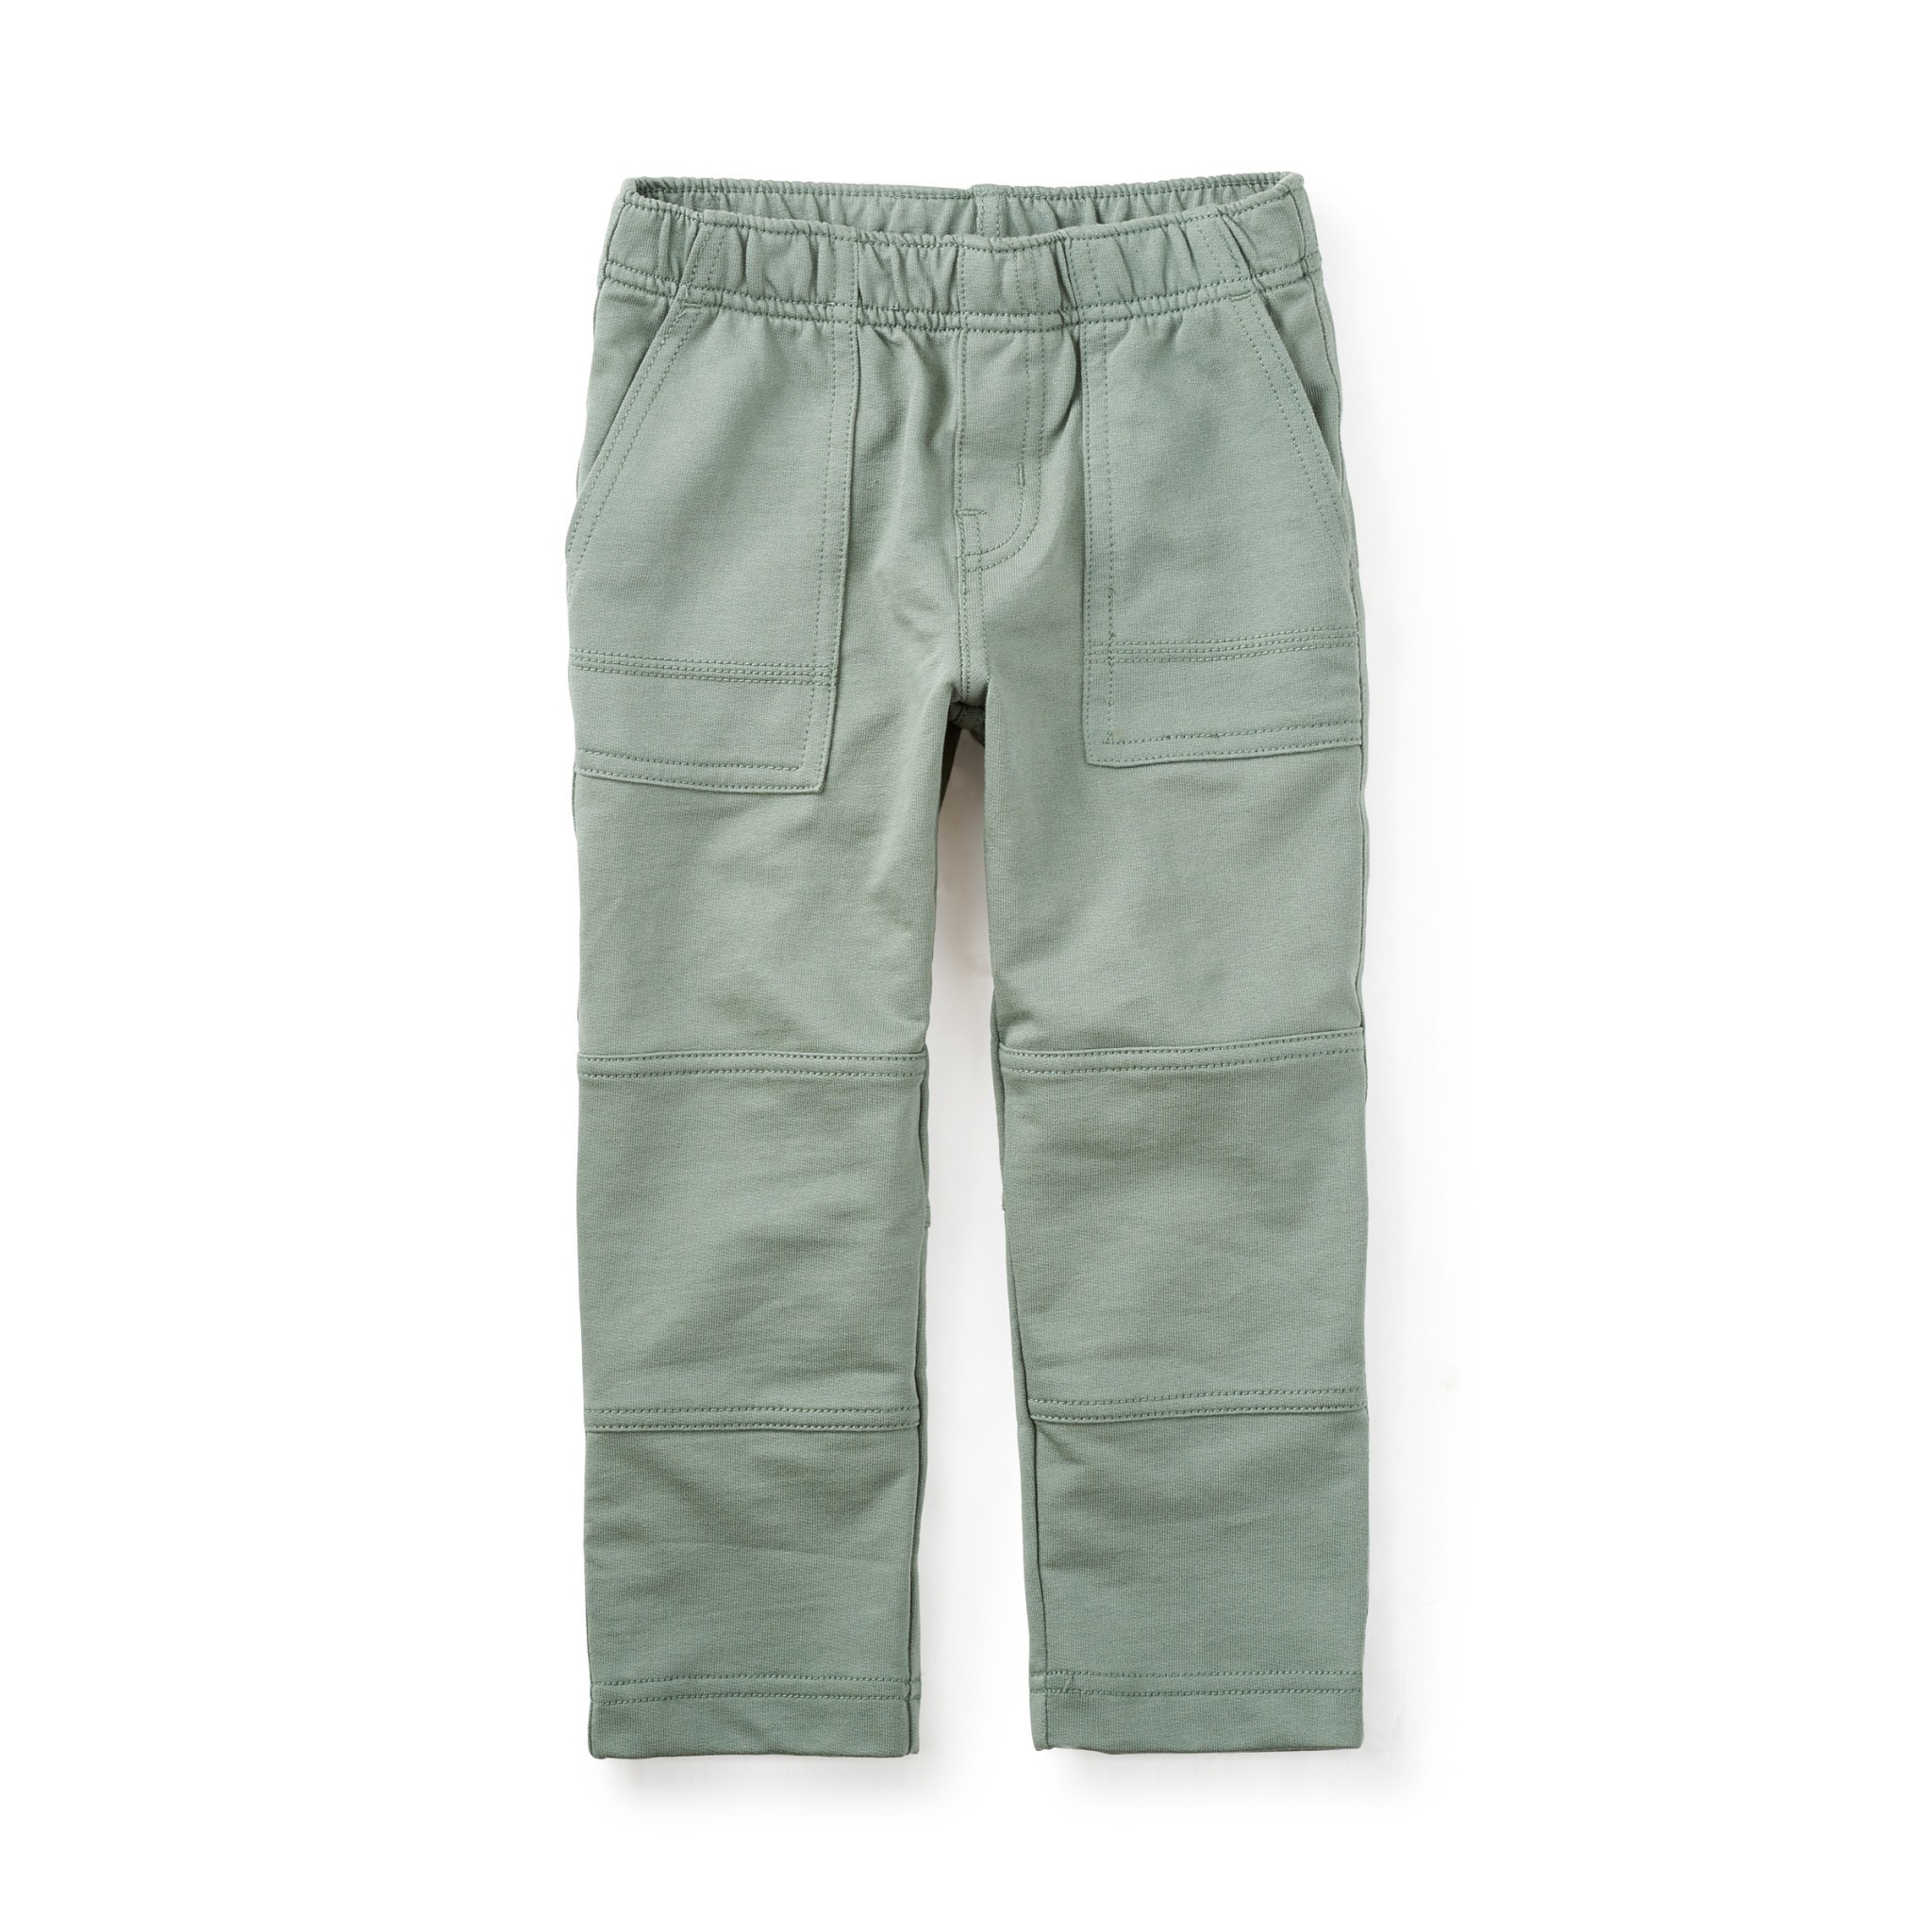 Tea Collection French Terry Playwear Pants - Olive Drab